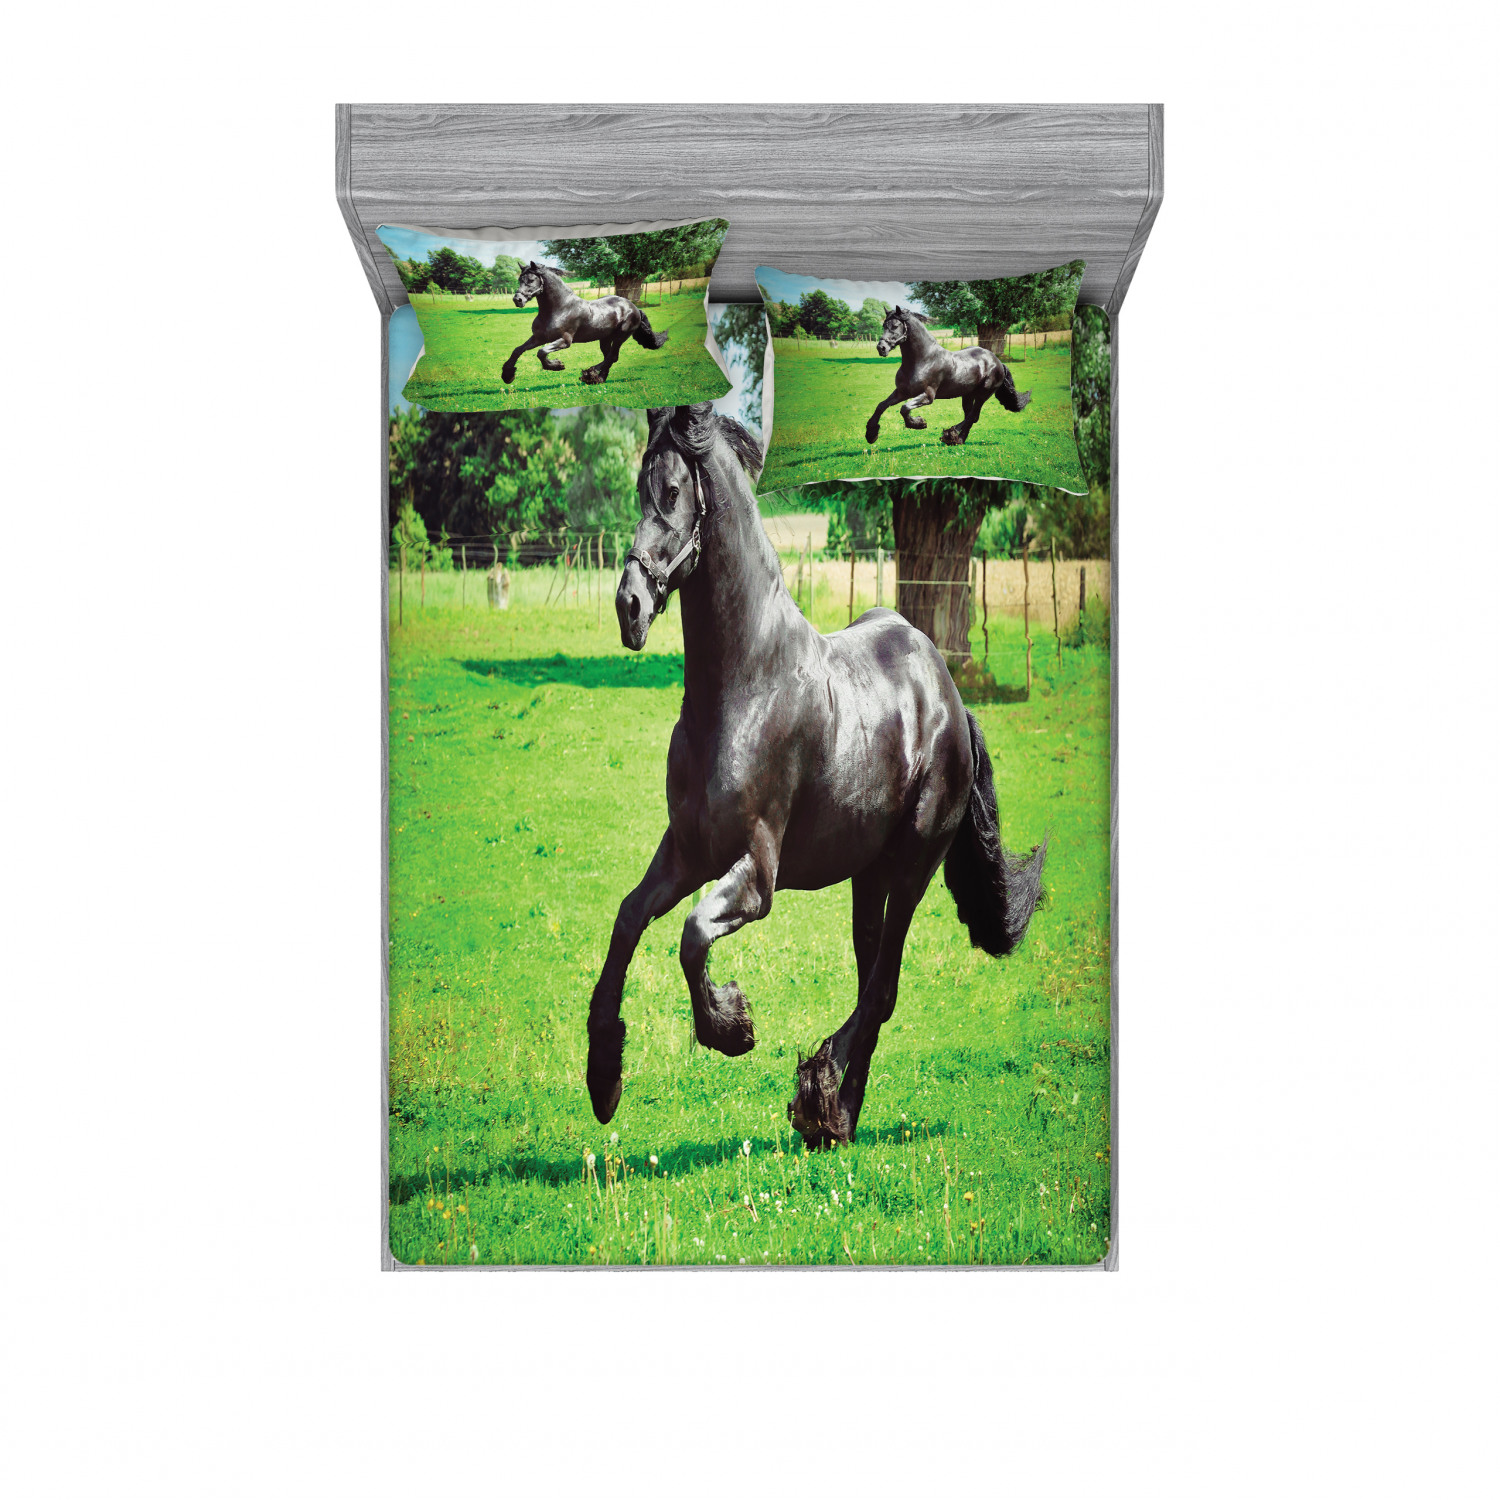 Horses Bedding Set With Sheet Covers Friesian Male Horse Masculine Driving Force Of Life Power Inner Strength Printed Bedroom Decor 2 Shams 4 Sizes Black Green By Ambesonne Walmart Com Walmart Com